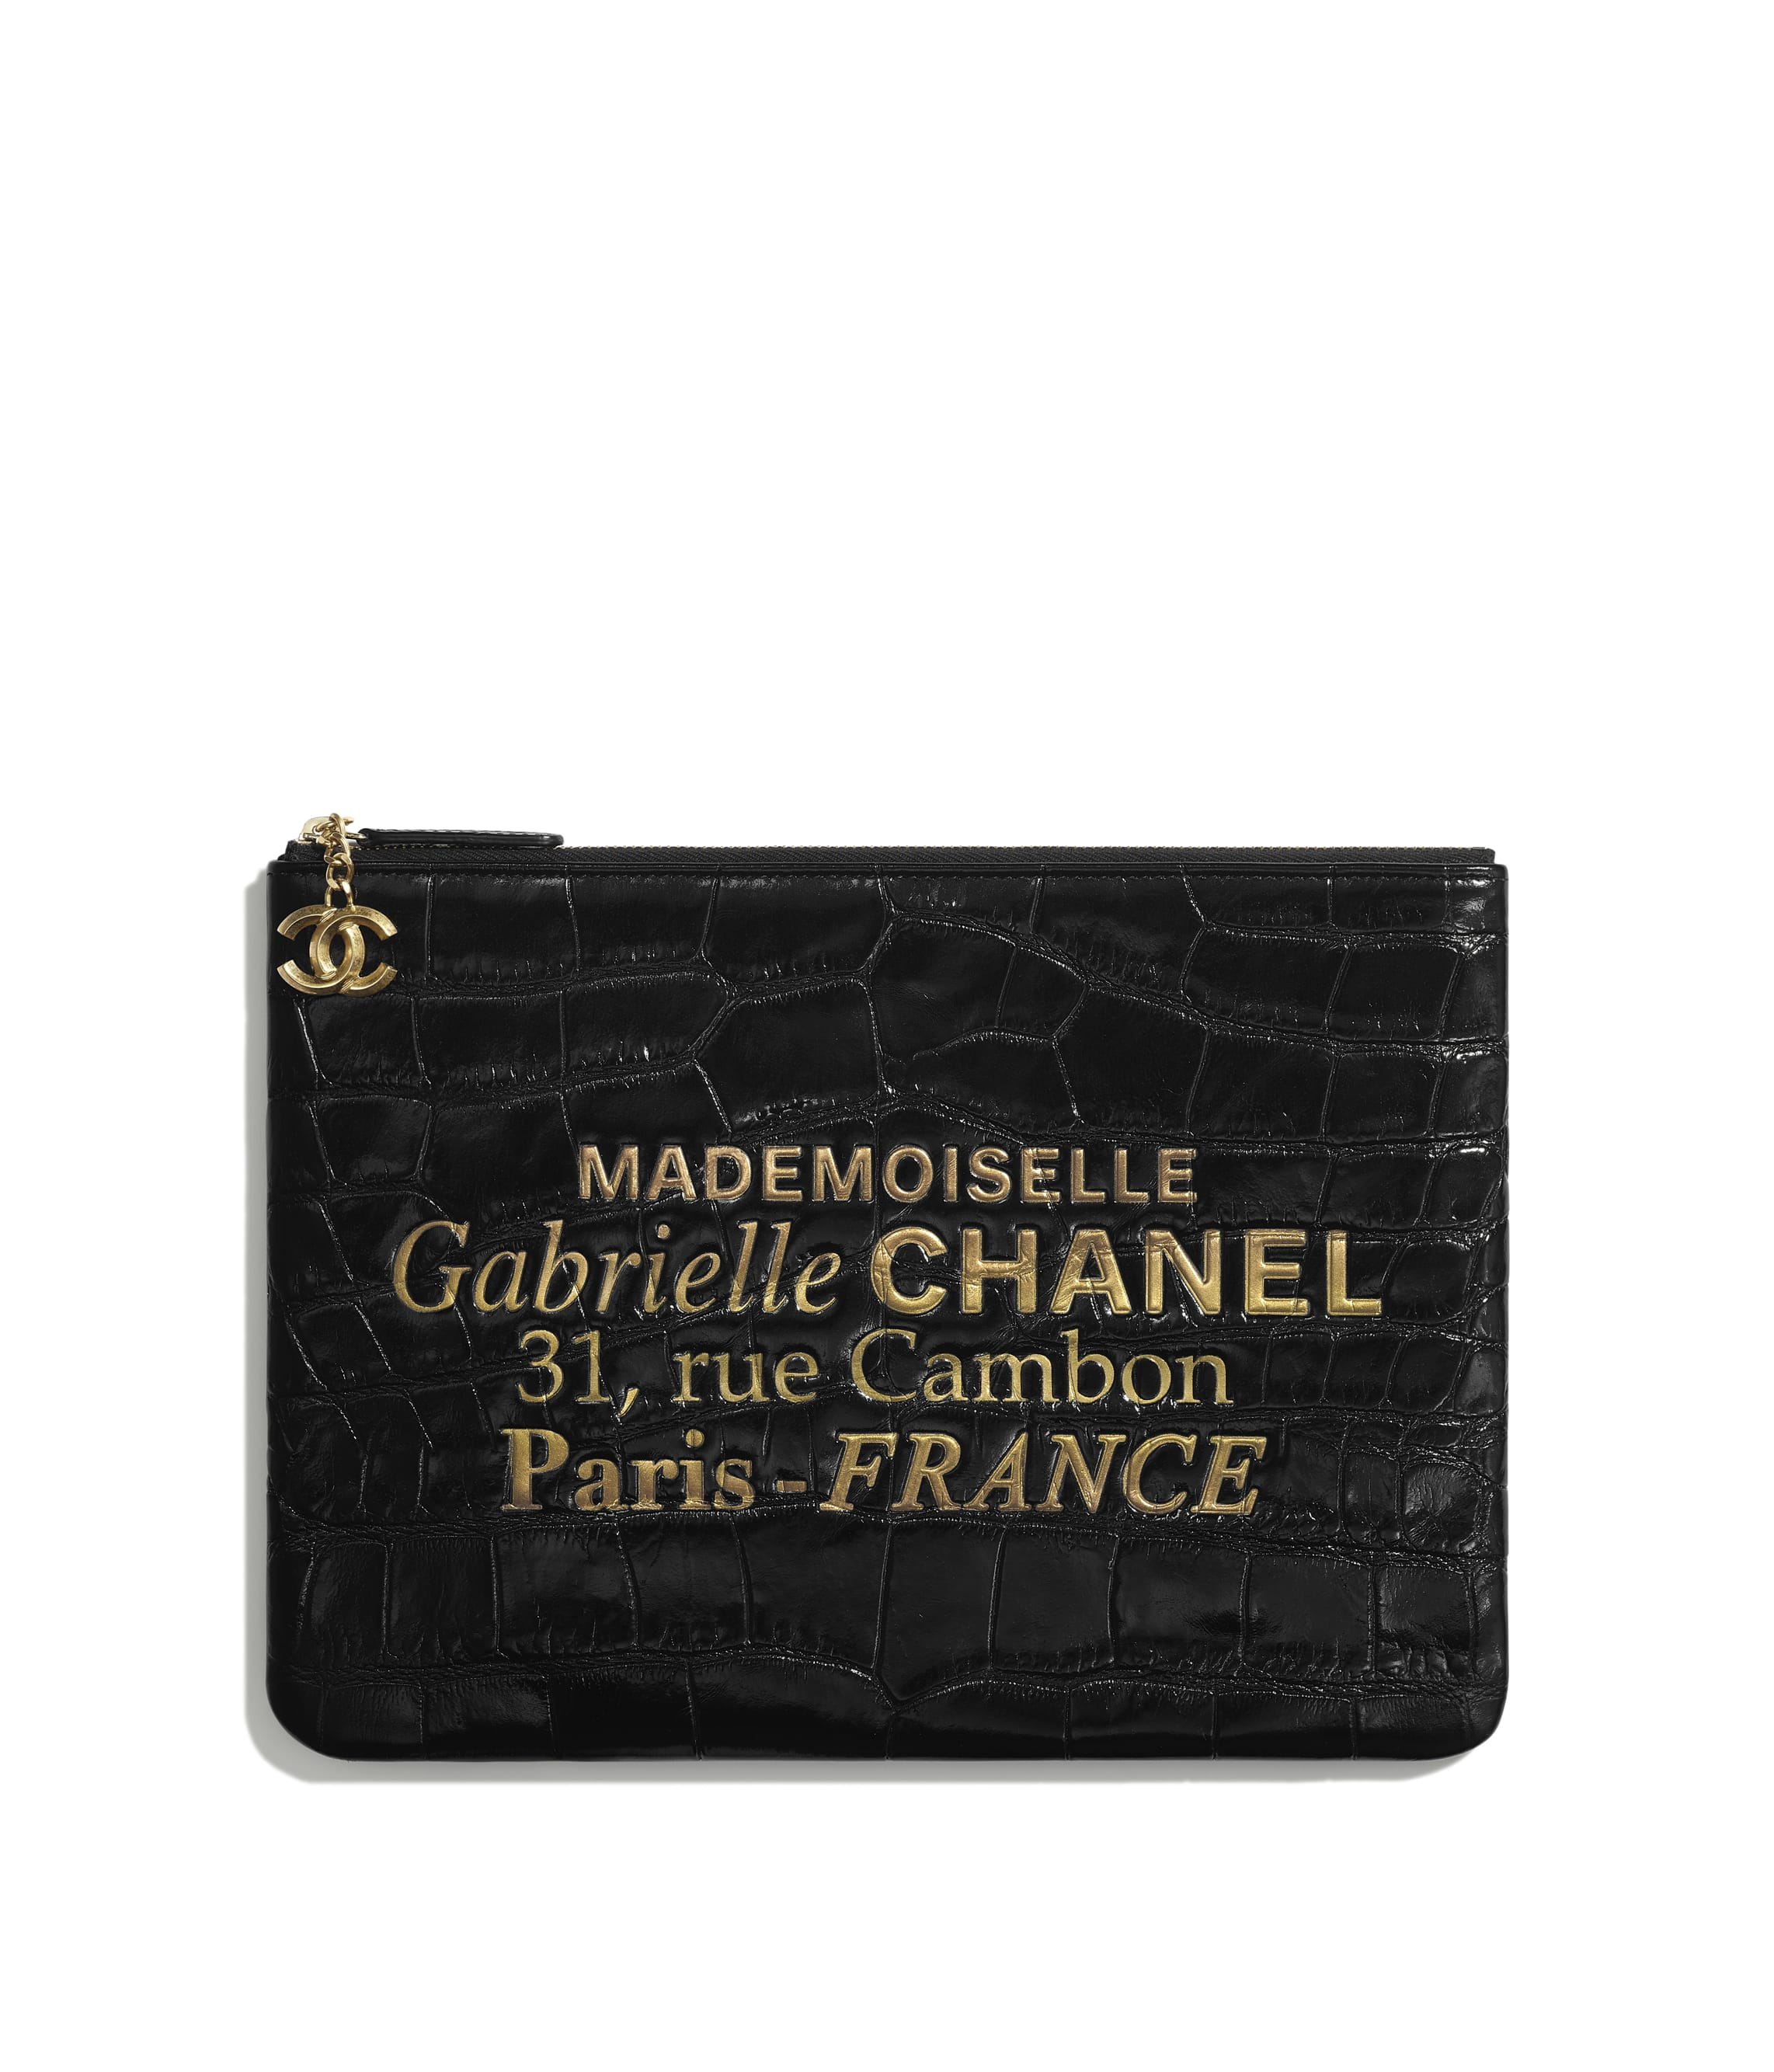 90f08cdce410 Small leather goods - CHANEL